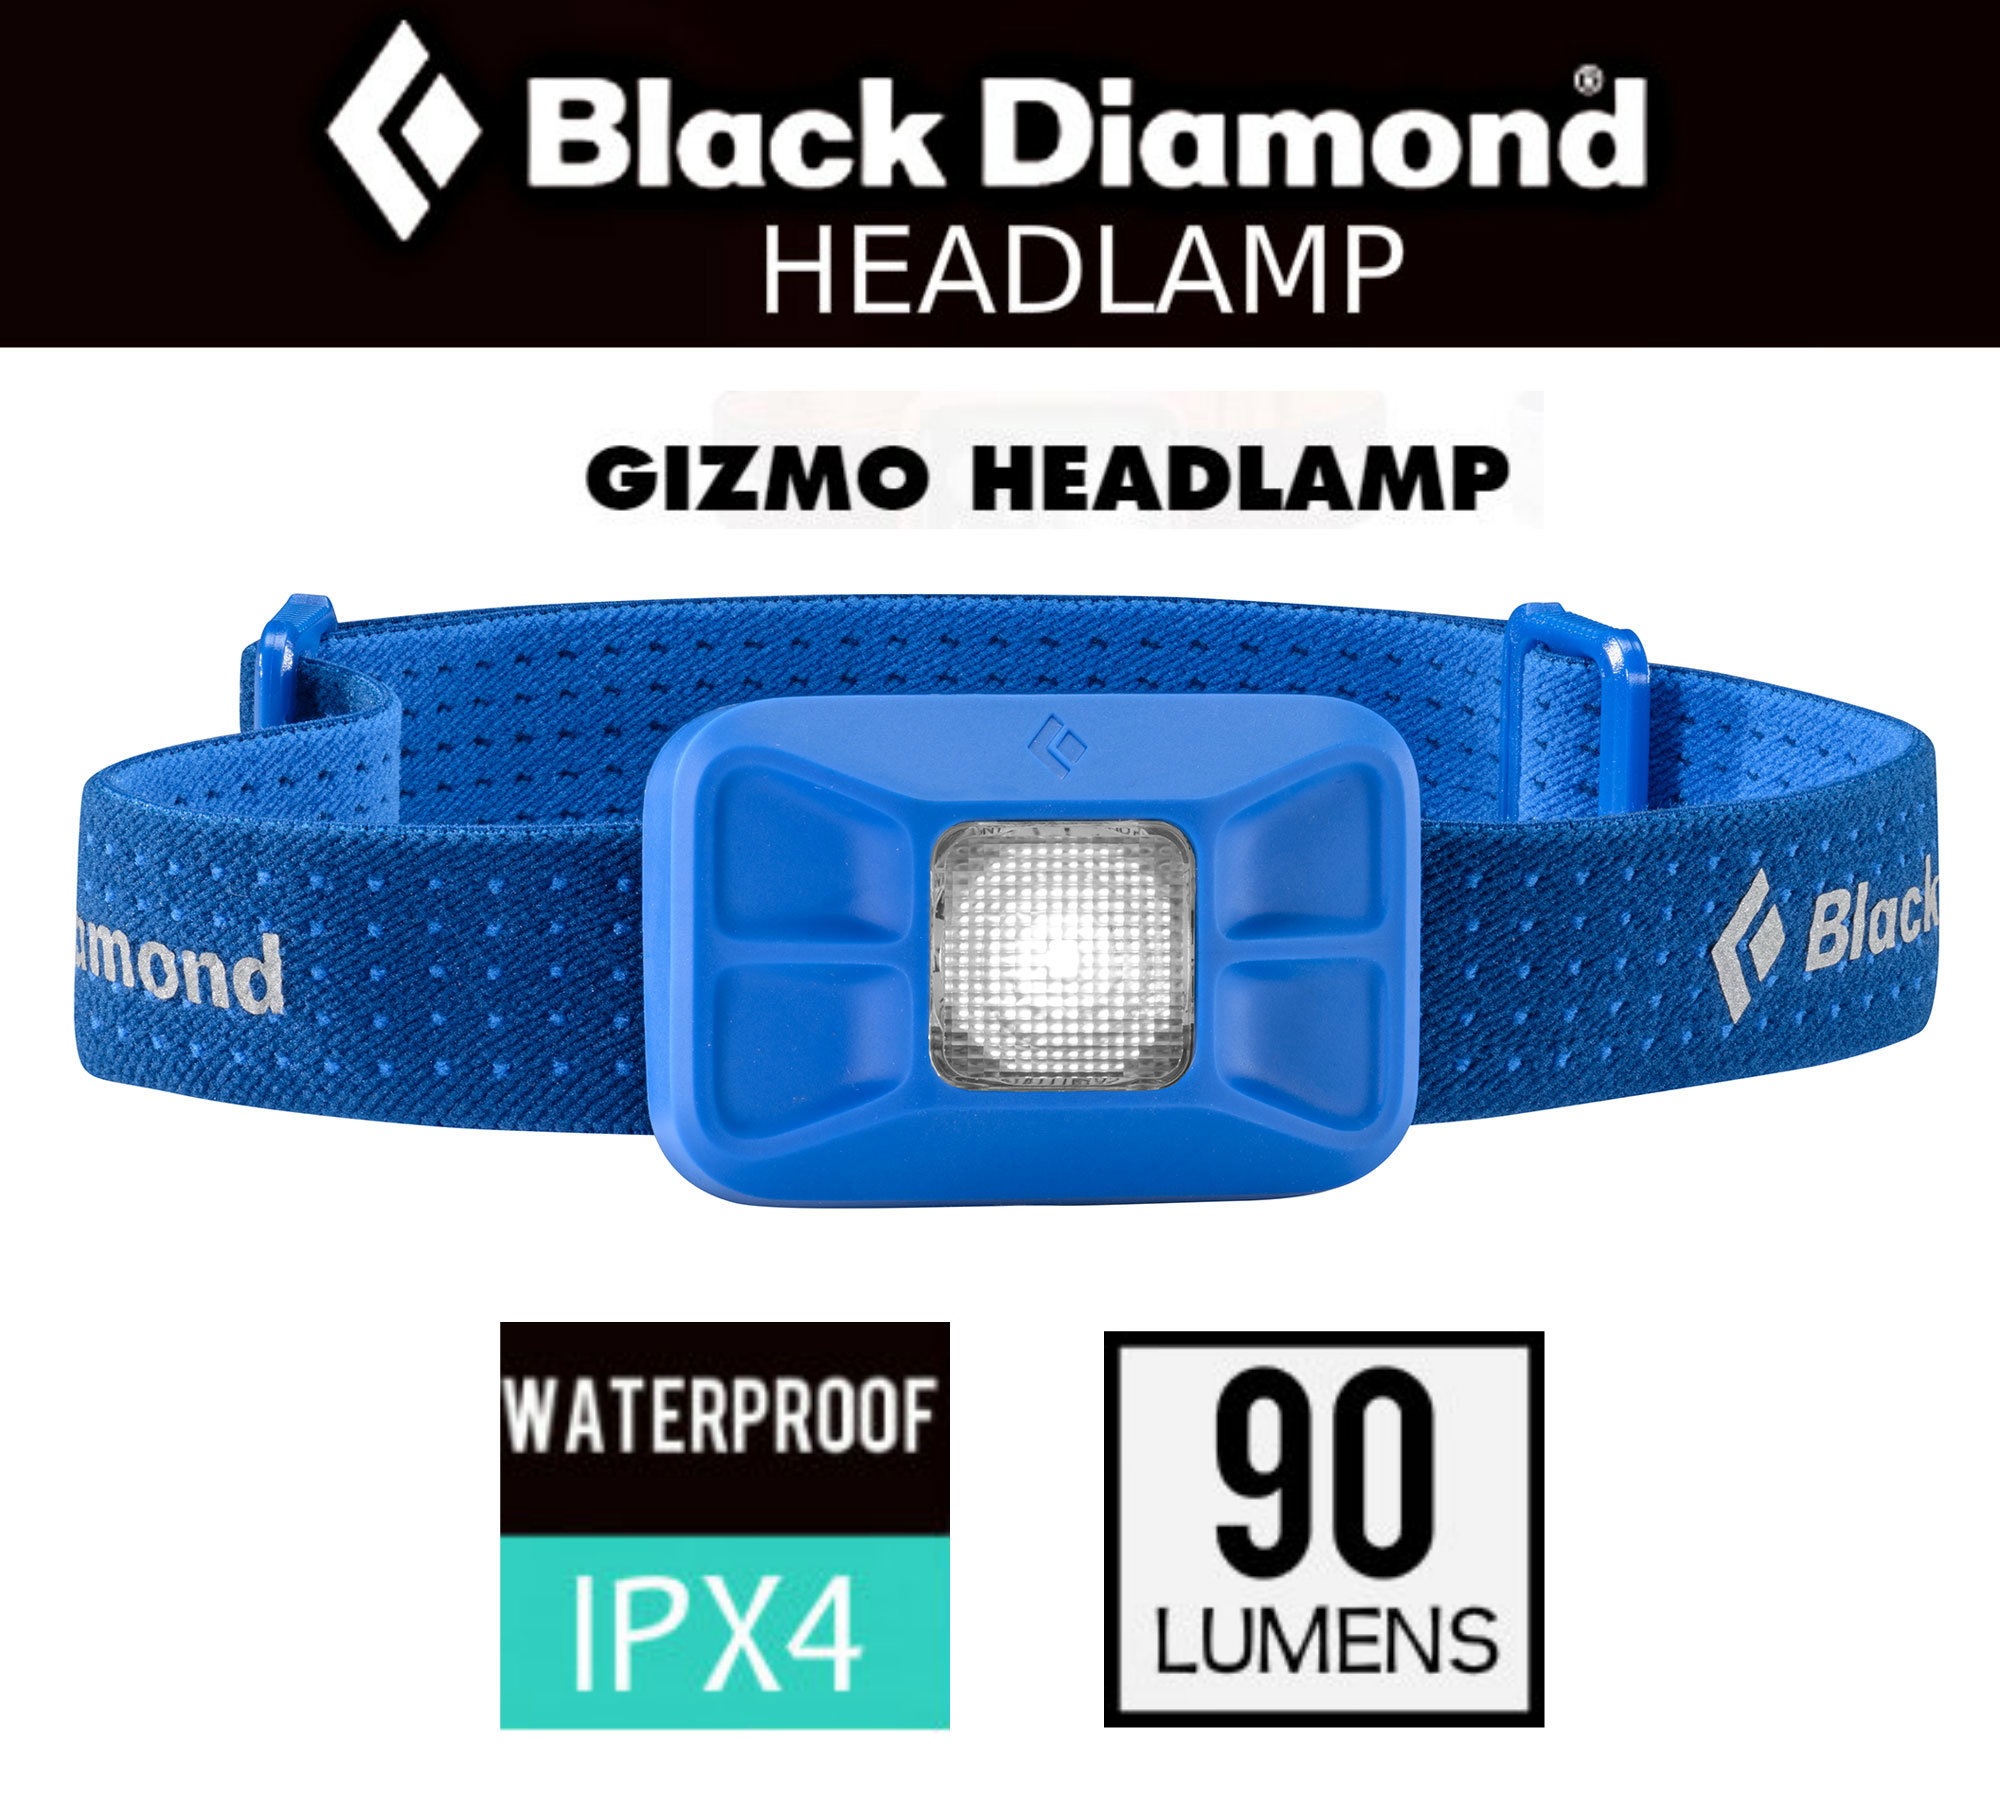 Acampada y senderismo Black Diamond Gizmo HEADLAMP Octane 90